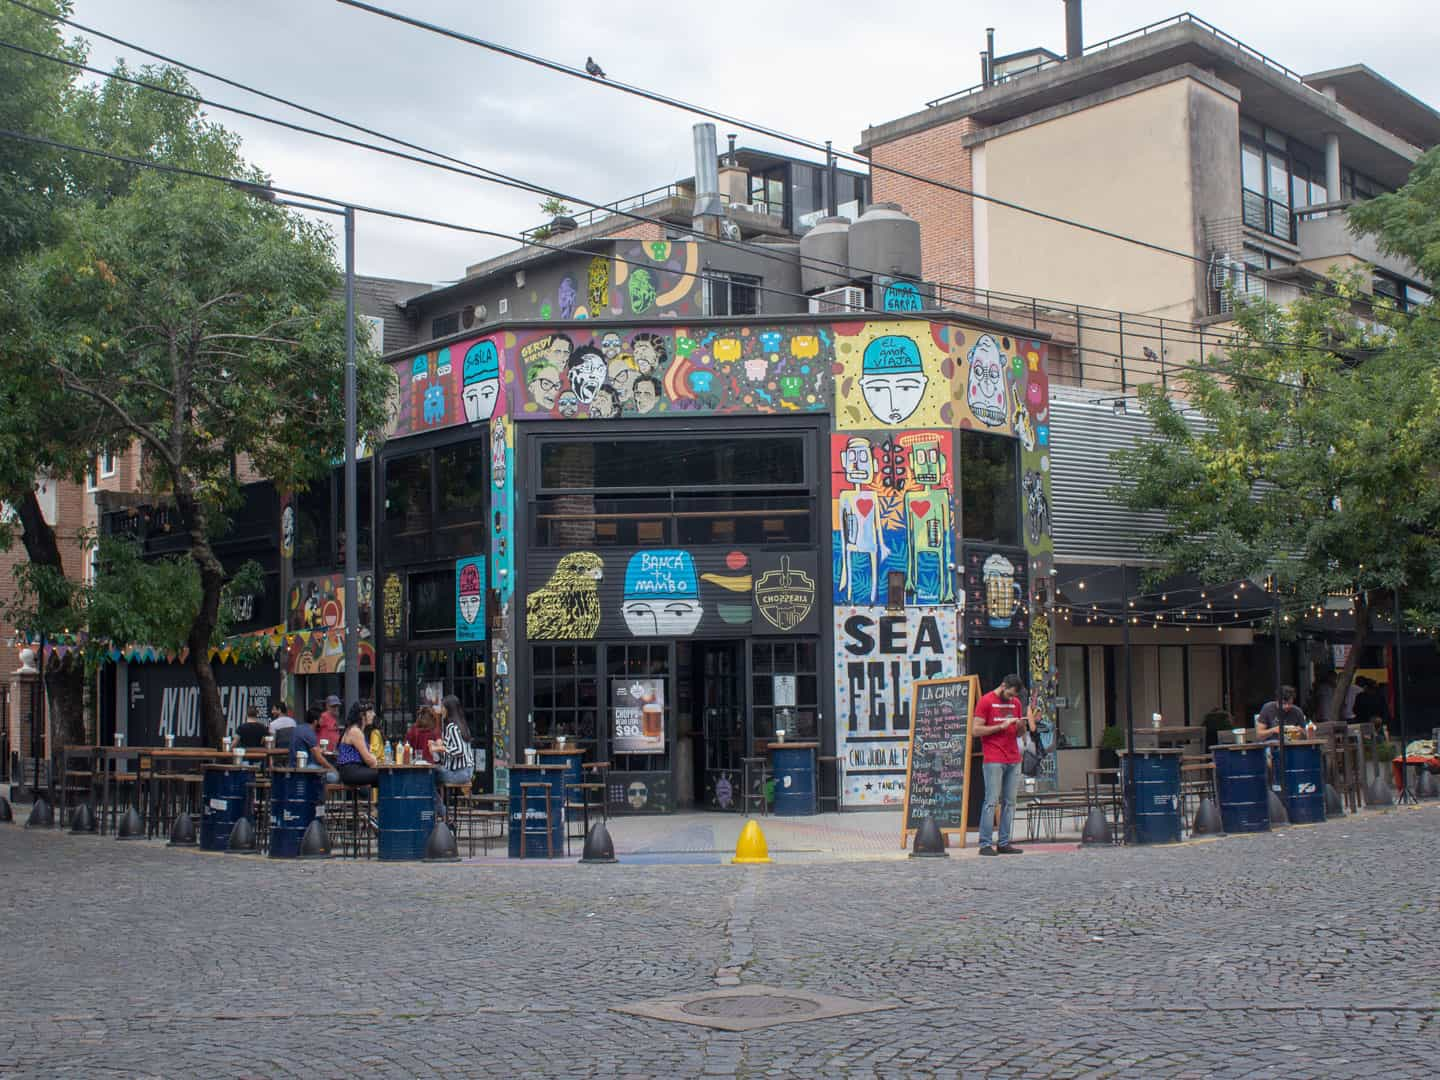 Street art on a bar facede in Palermo, Buenos Aires